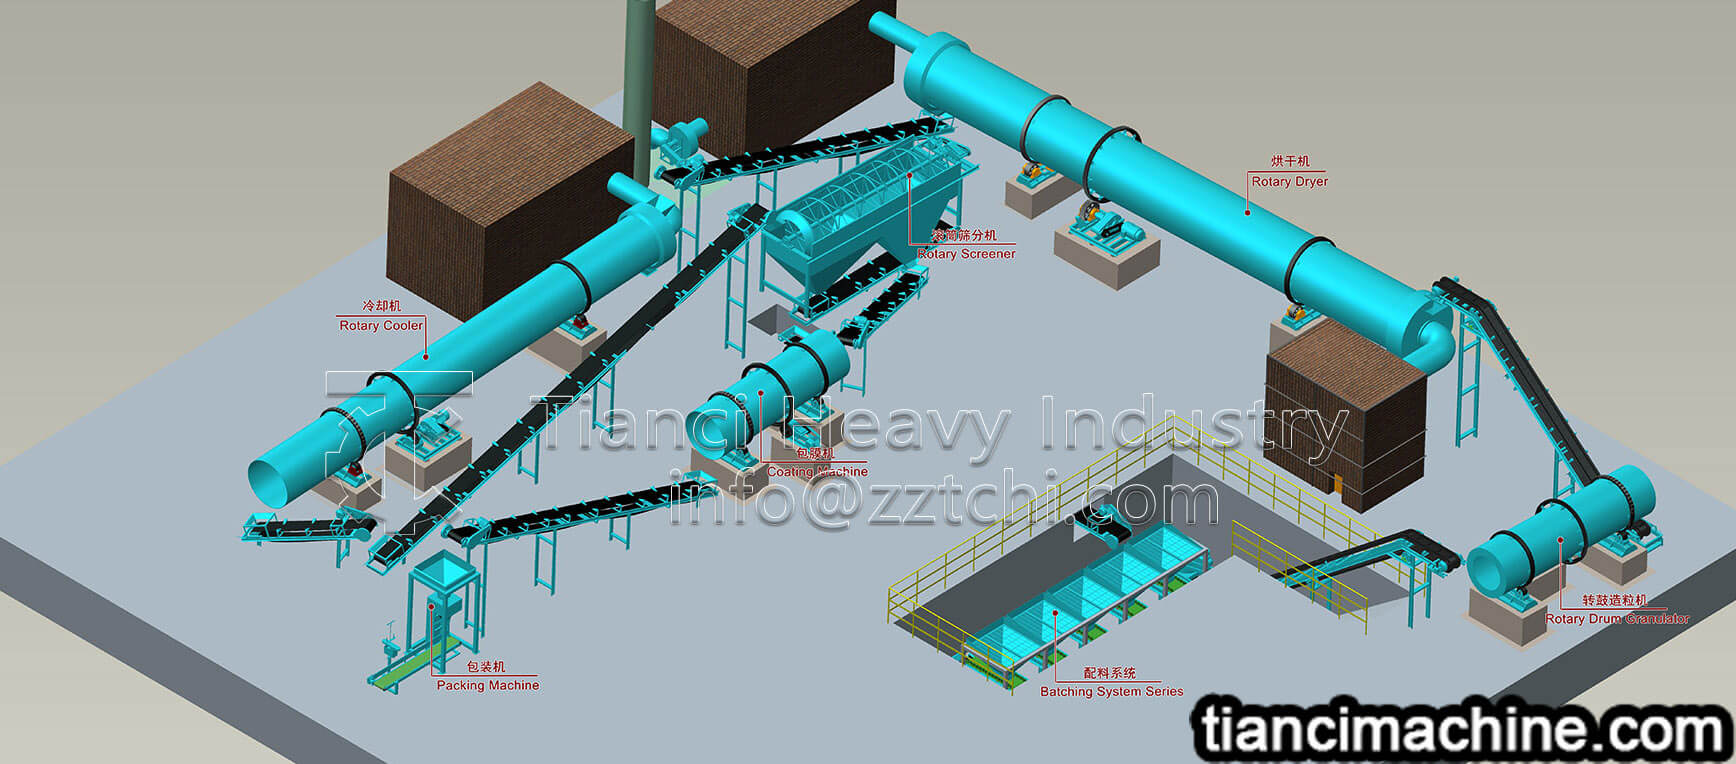 Precautions for NPK fertilizer production line to produce particles